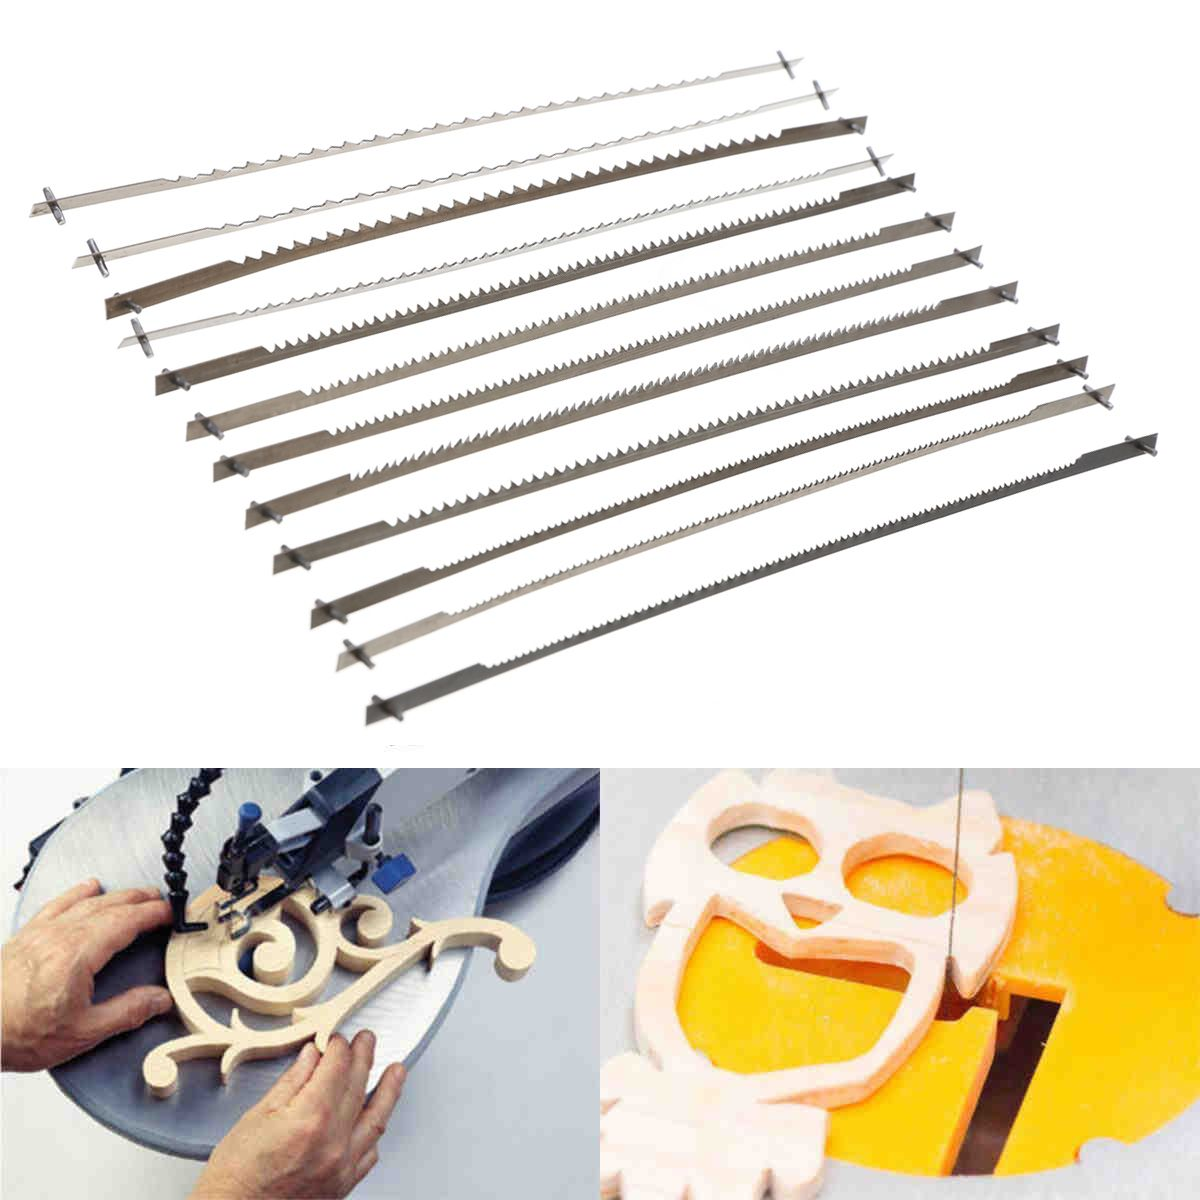 12pcs/lots Pinned Scroll Saw Blades Woodworking Power Tools Accessories 127mm Black